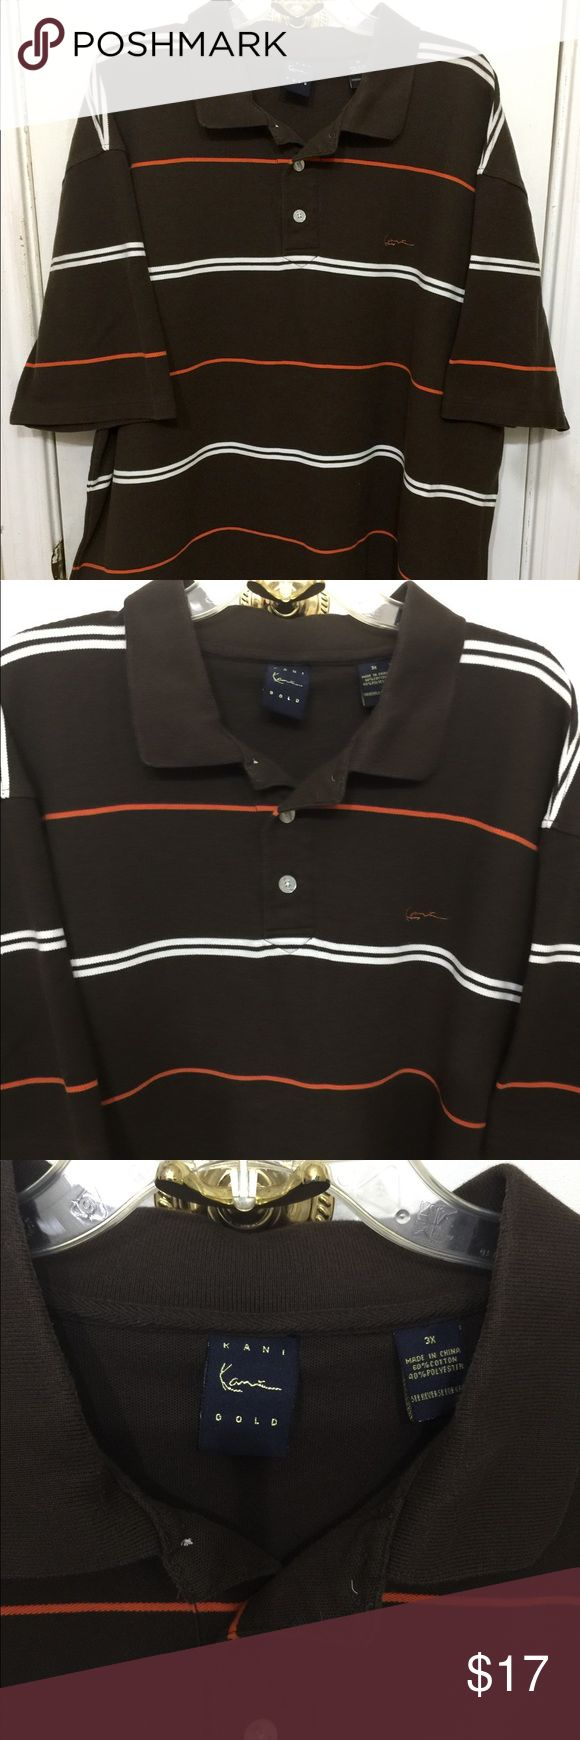 Kani Gold Men's Polo Shirt Sz 3X Brown Kani Gold Men's Striped Polo Shirt Sz 3X Brown Kani Gold Shirts Polos